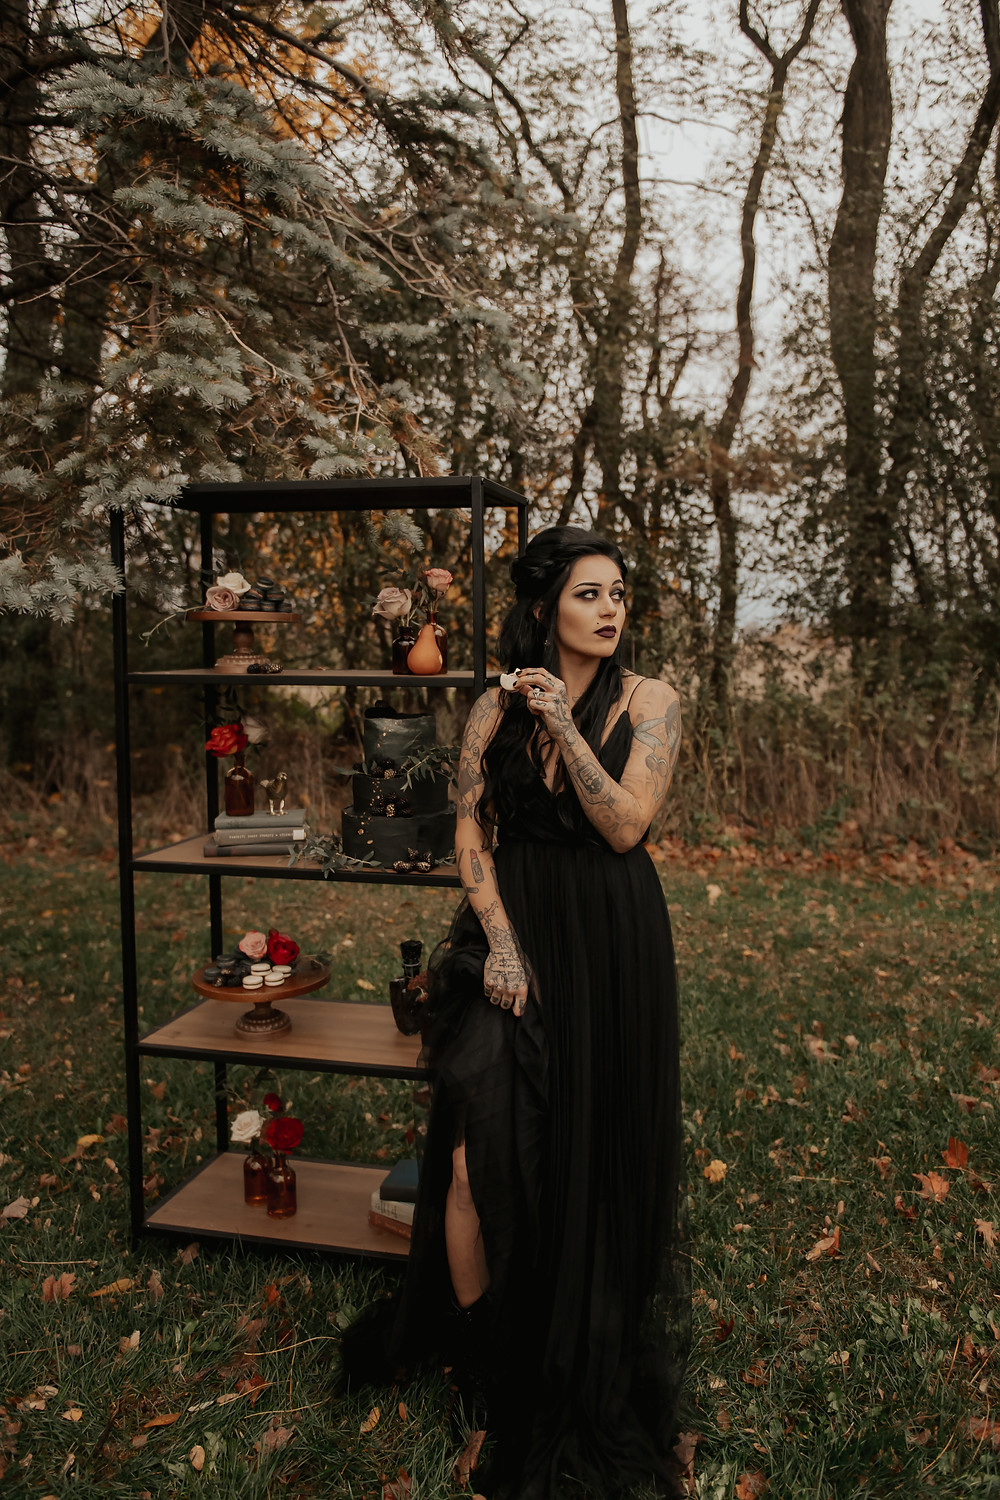 Fall outdoor wedding cake display: Dark & Romantic Wedding Inspiration featured on Pretty Little Vintage Co.